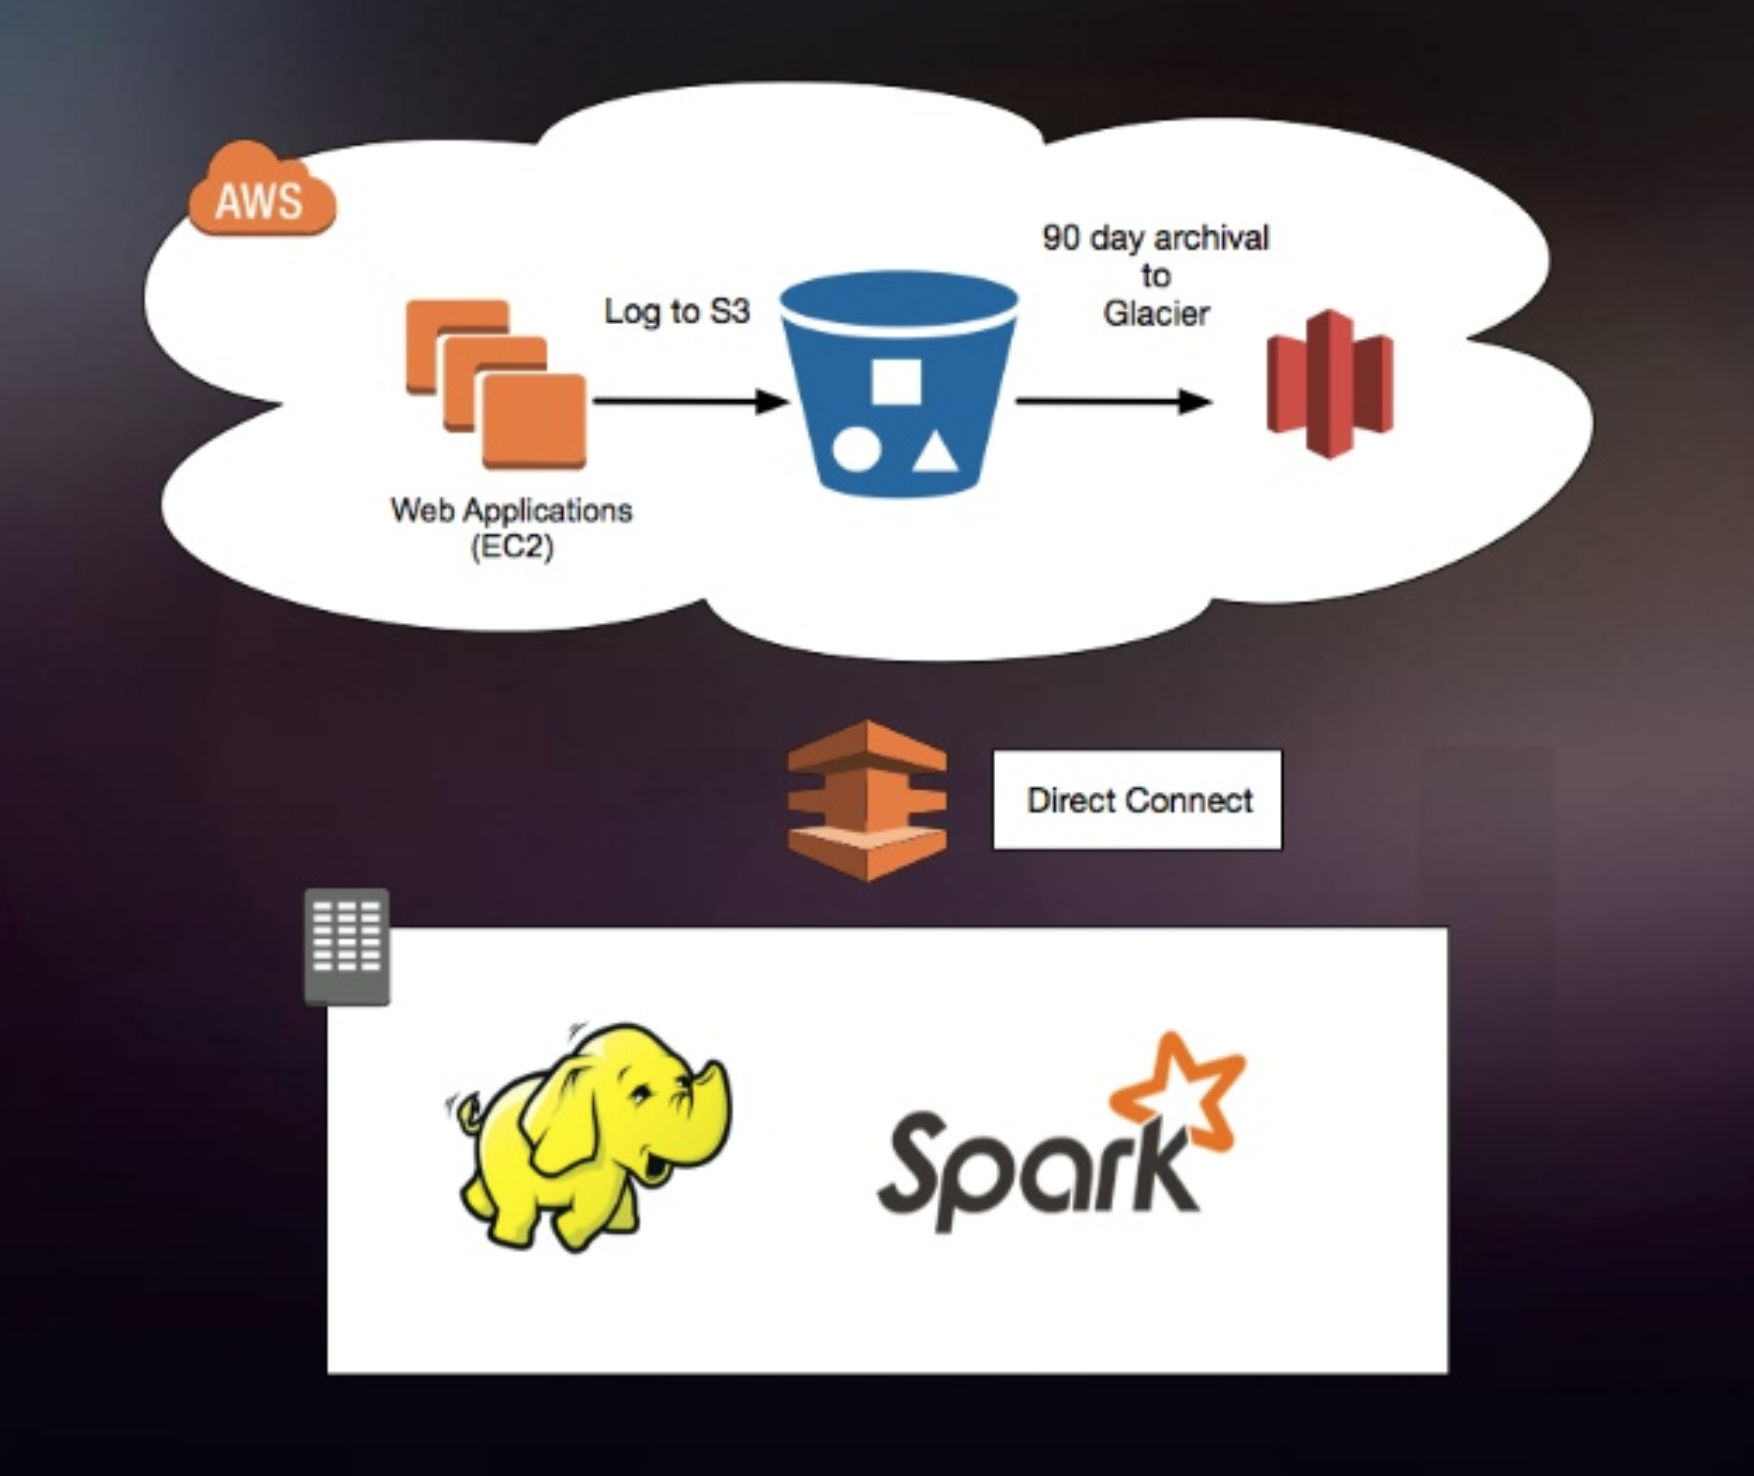 Fig. 2: Data Storage Architecture with AWS, EC2, S3